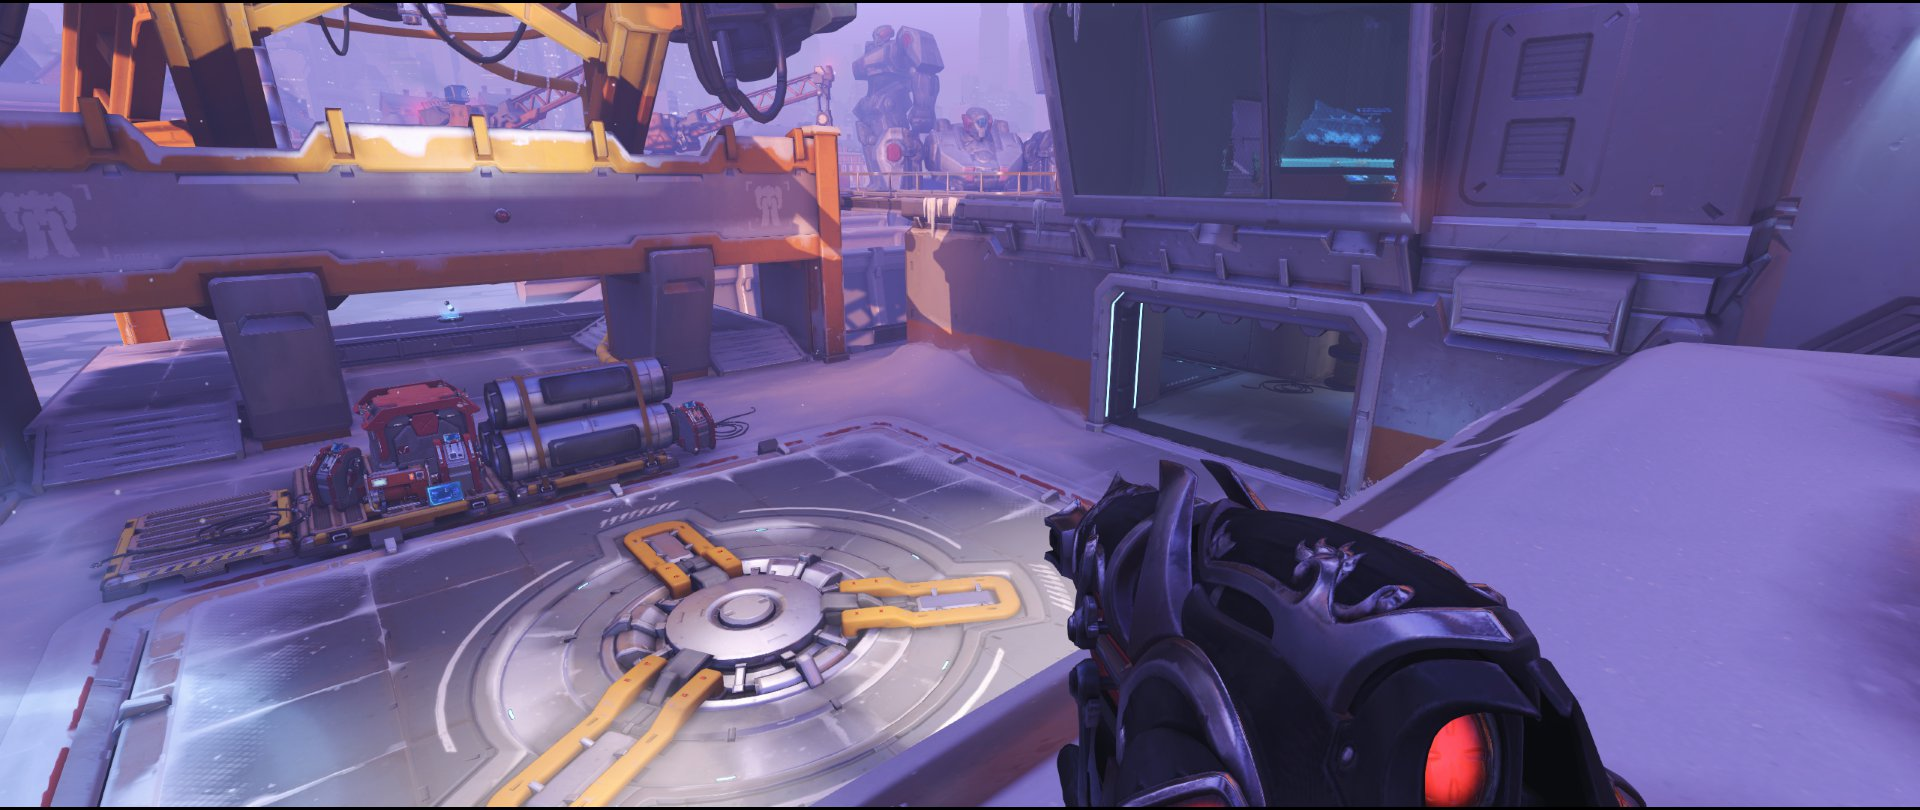 Hut to point view attack sniping spot Widowmaker Volskaya Industries Overwatch.jpg